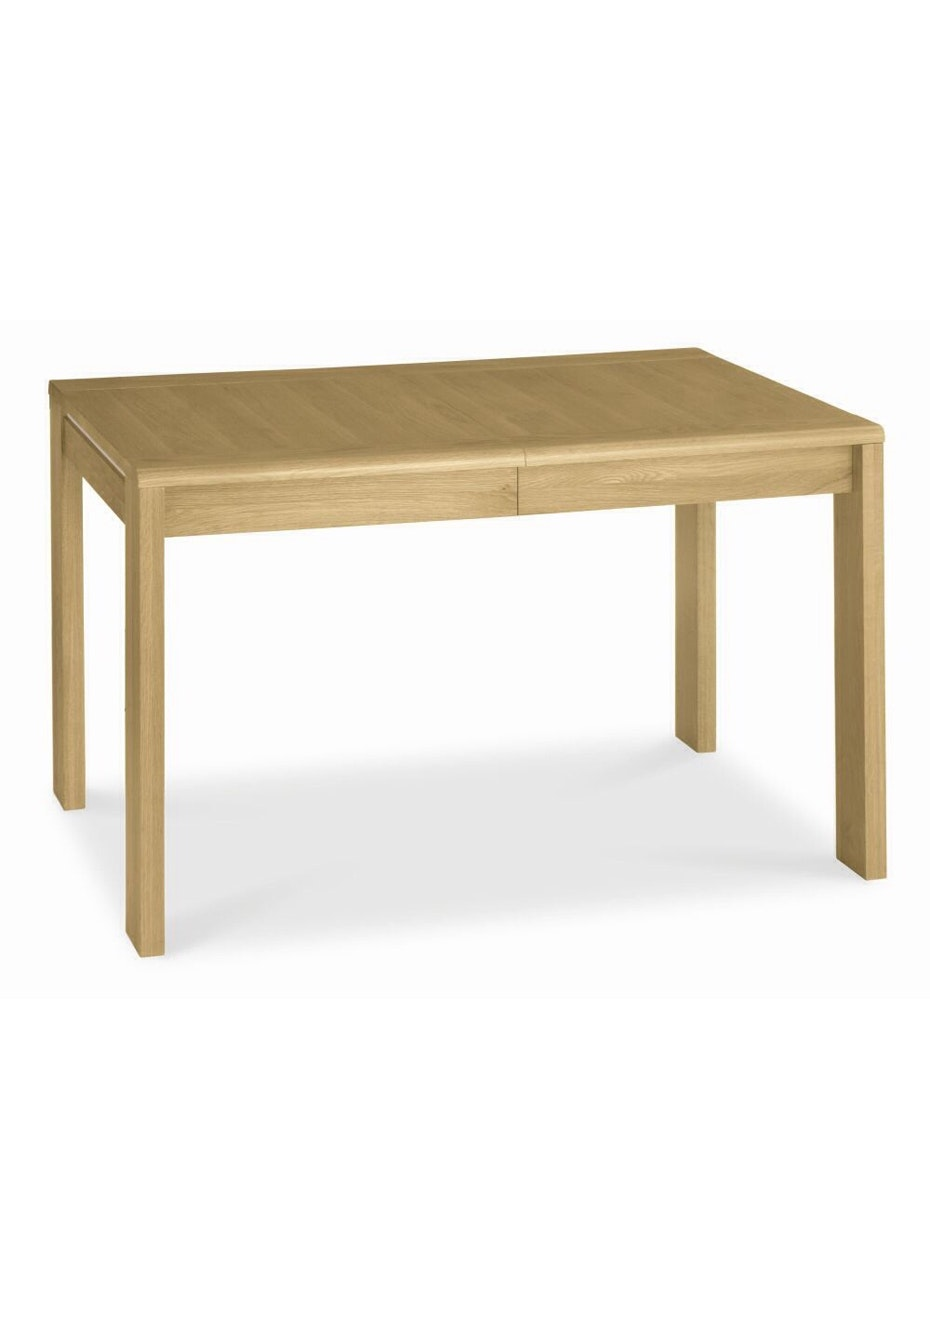 Furniture By Design - Casa Oak Small Extension Table- Light Oak